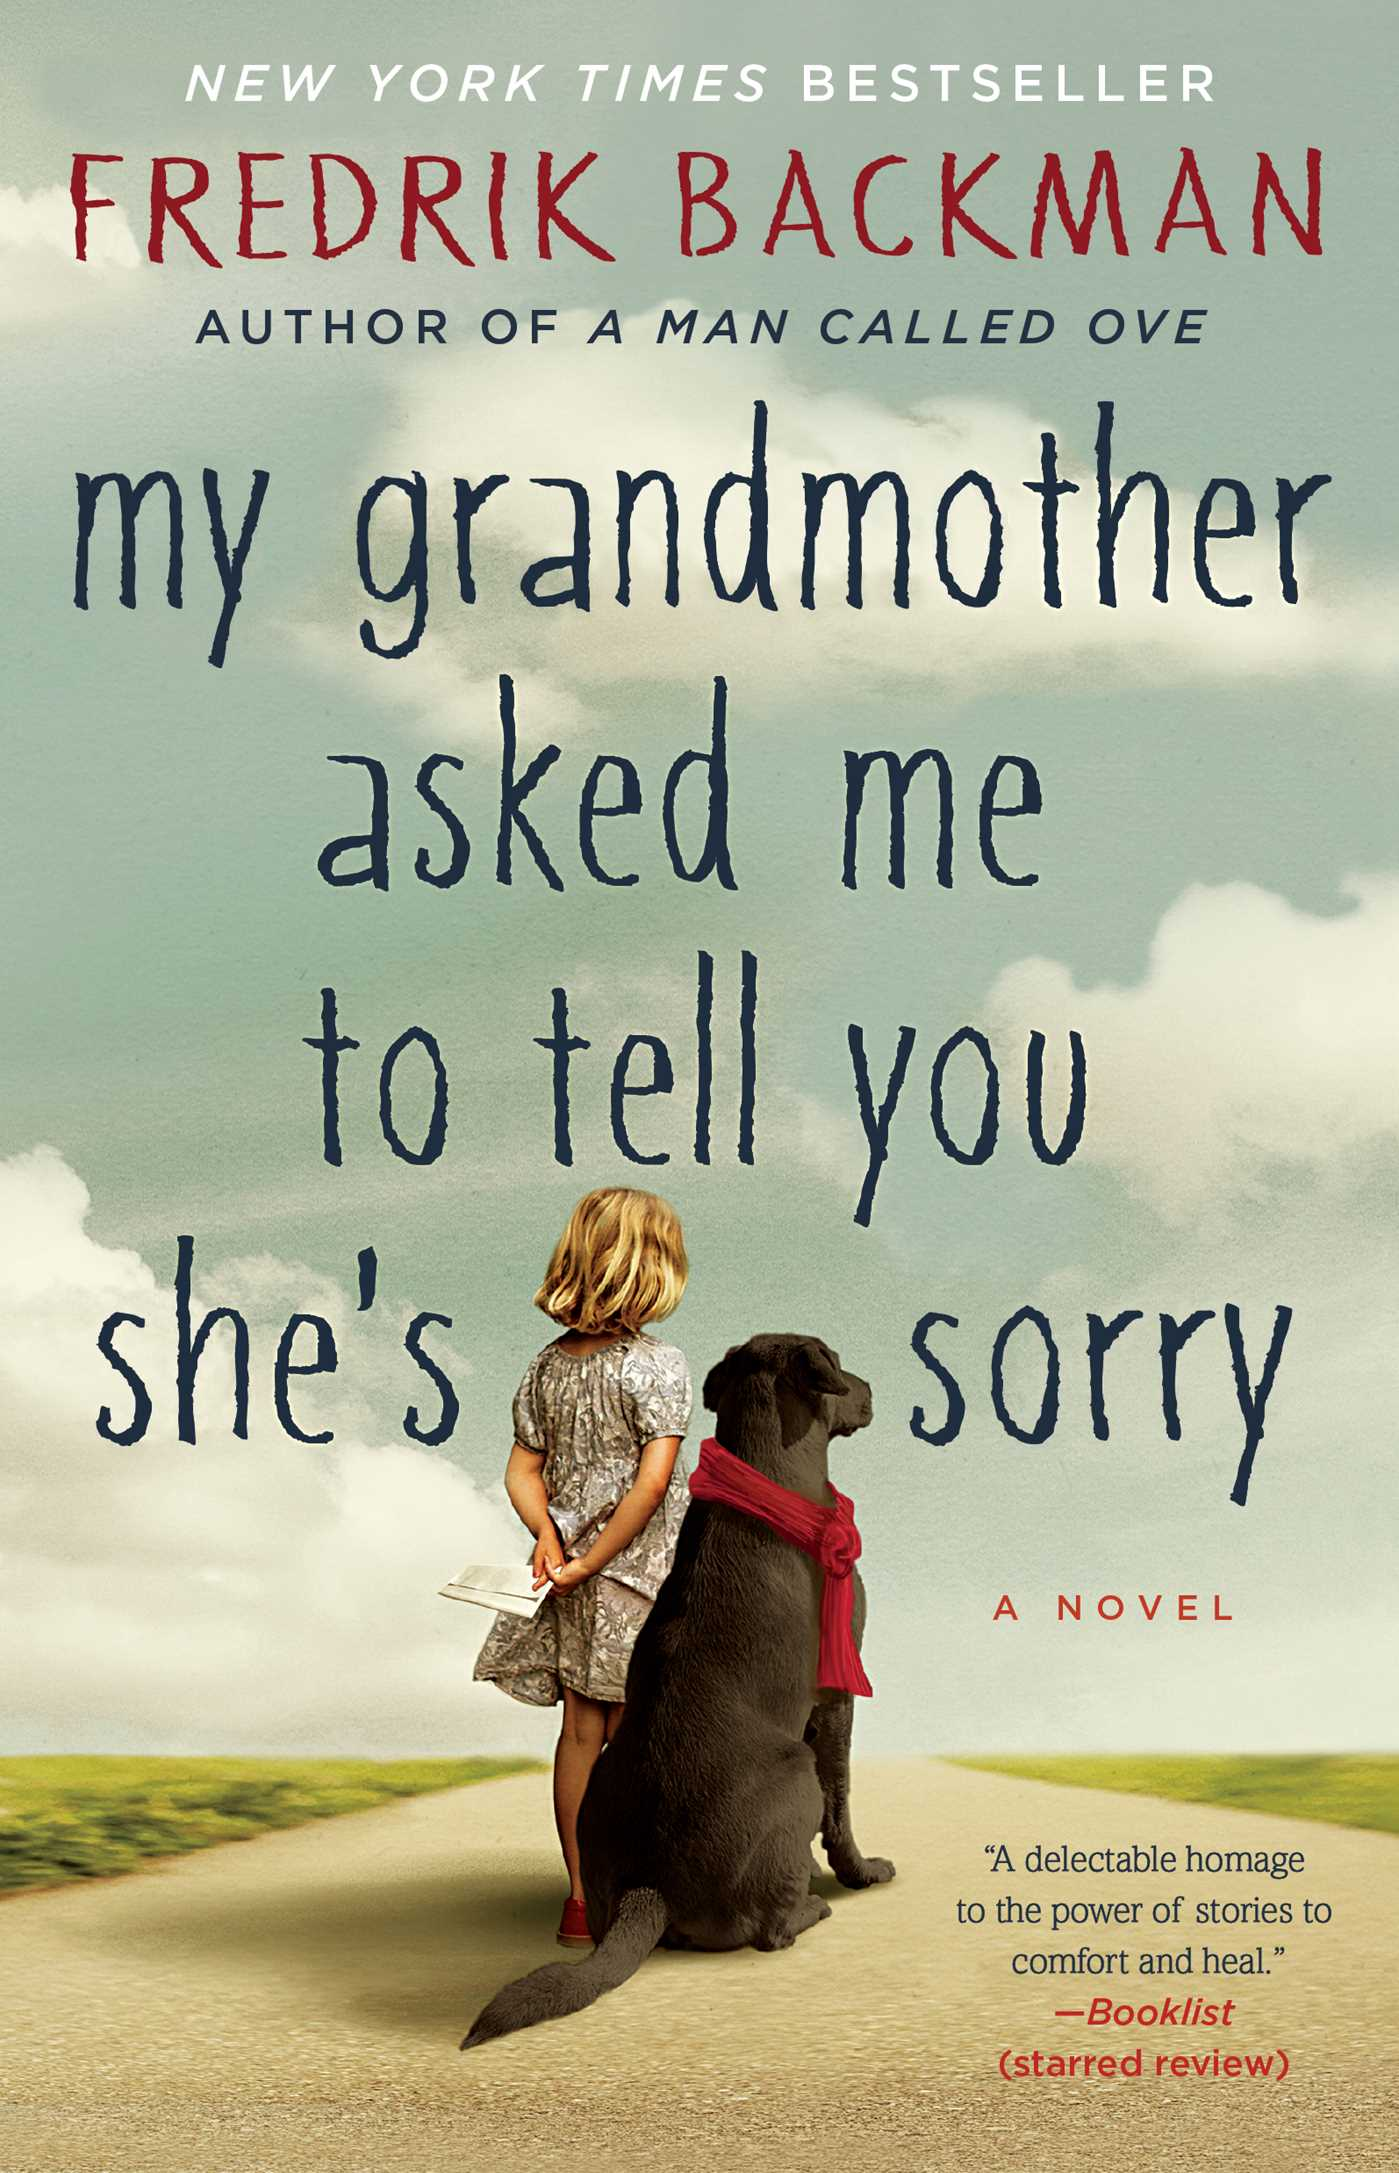 The cover of the book My Grandmother Asked Me to Tell You She's Sorry